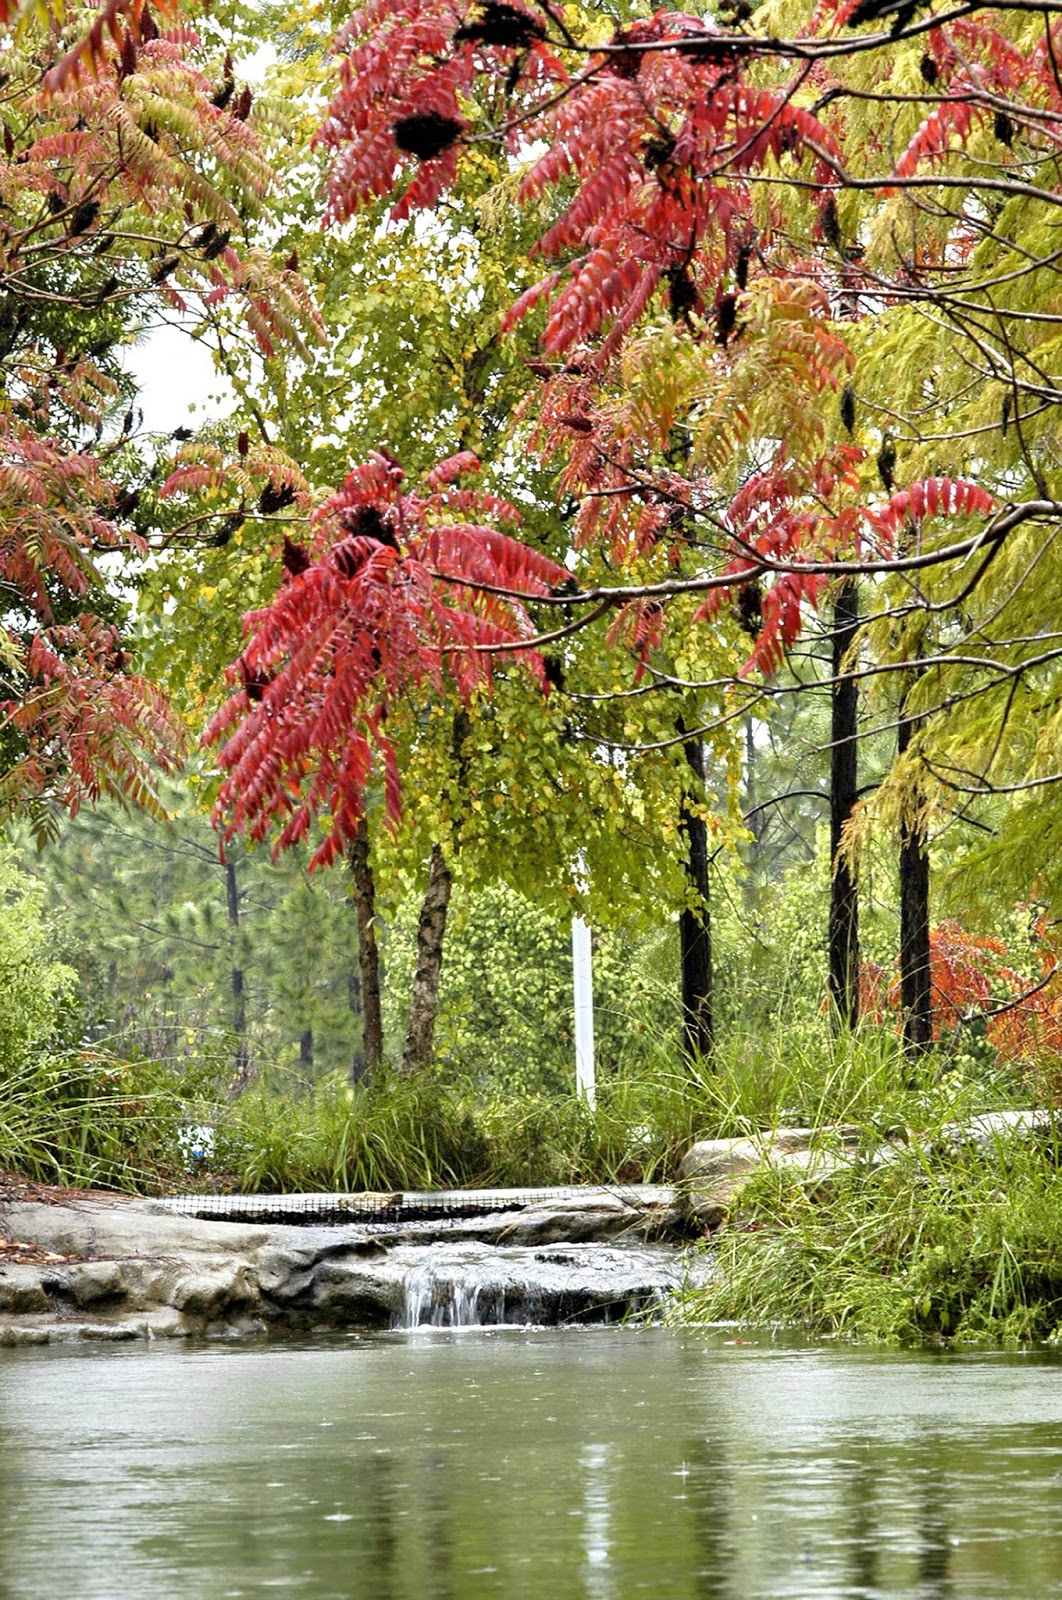 City of Athens Texas Tourism: Scenic Fall Foliage Driving Trail